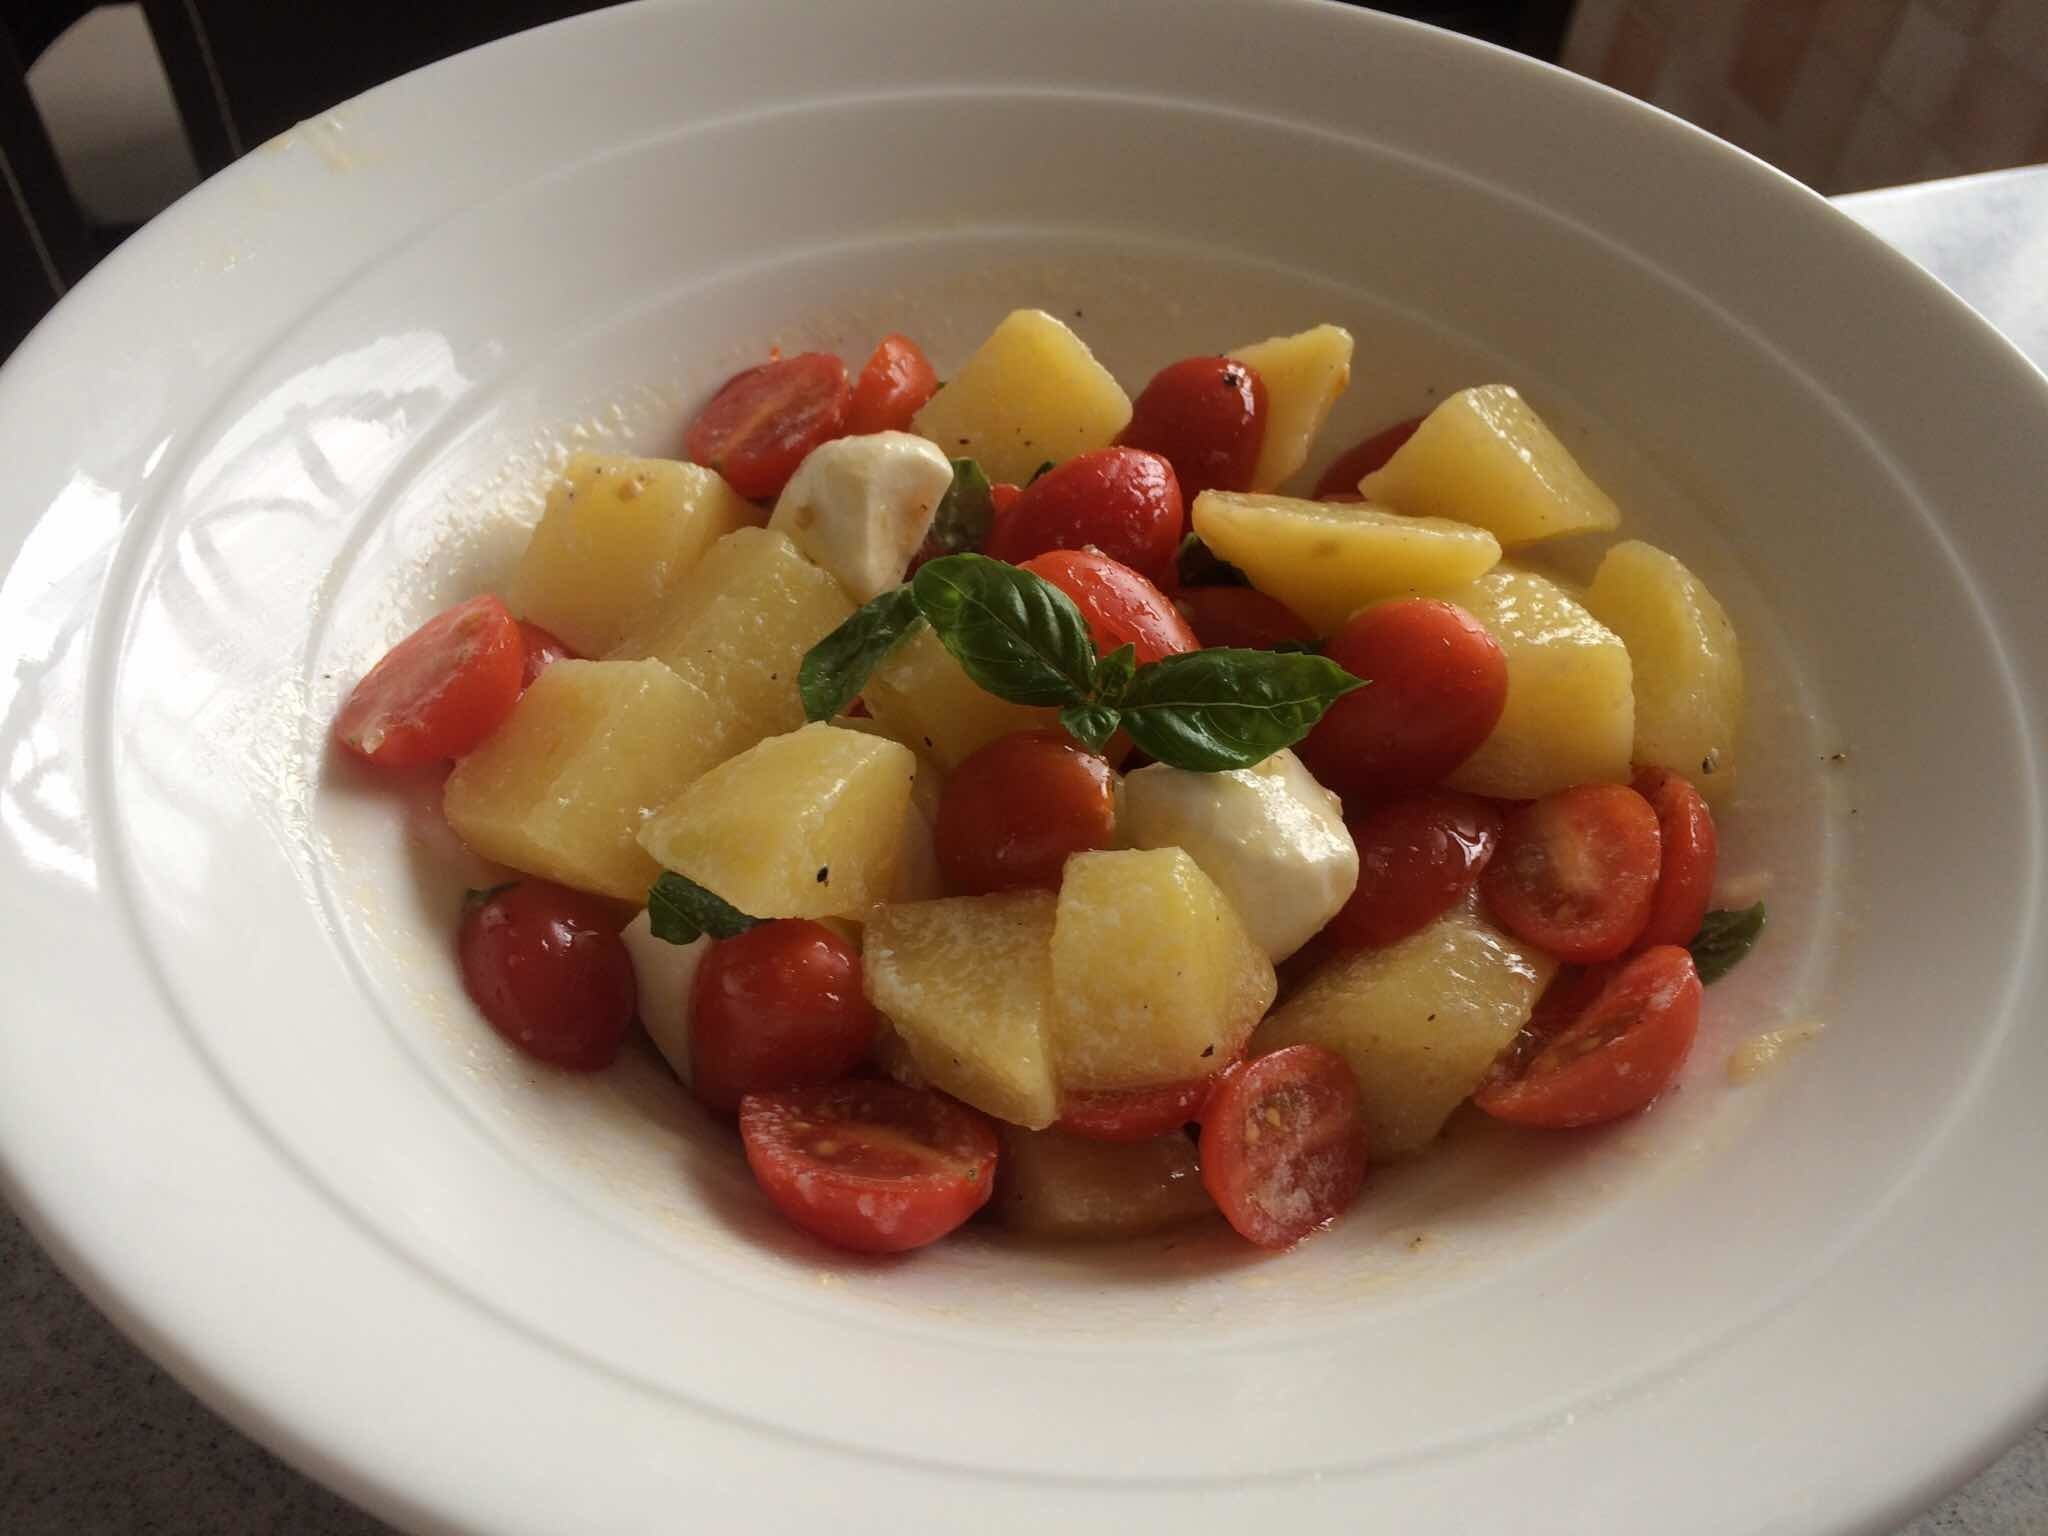 Potato salad with cherry tomatoes and mozzarella balls in buttermilk sauce